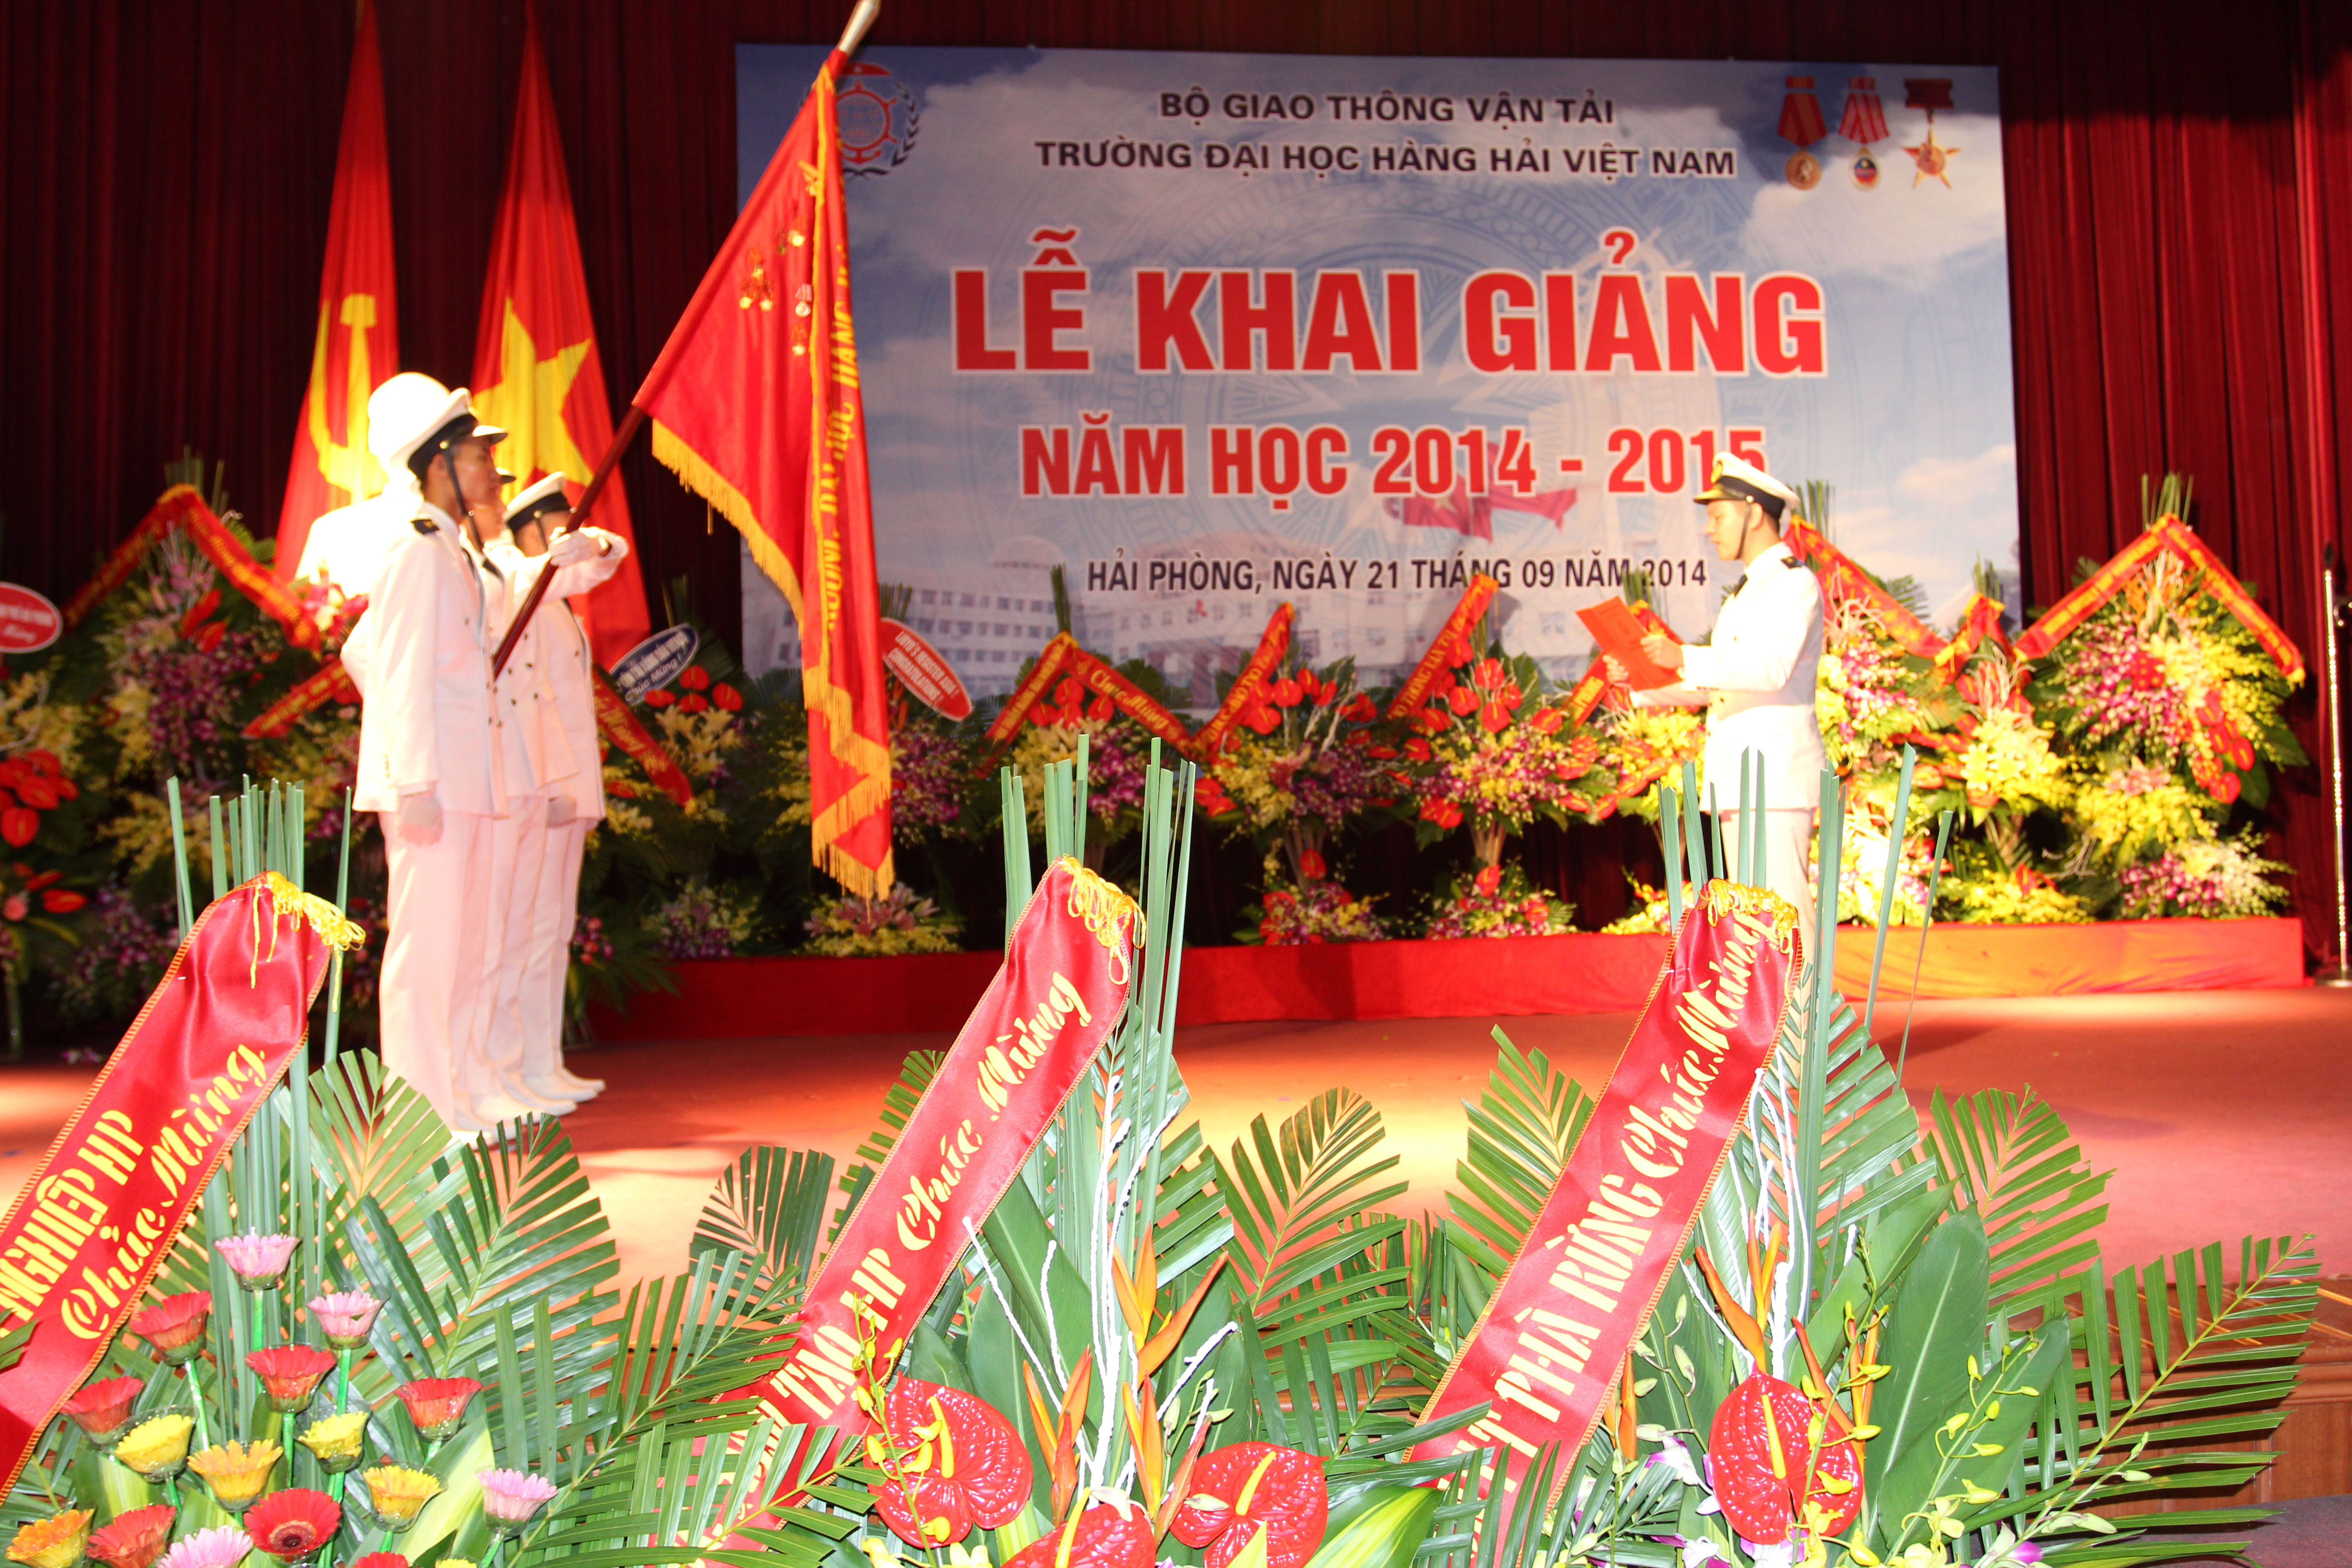 The new academic school year opening ceremony 2014 – 2015 at